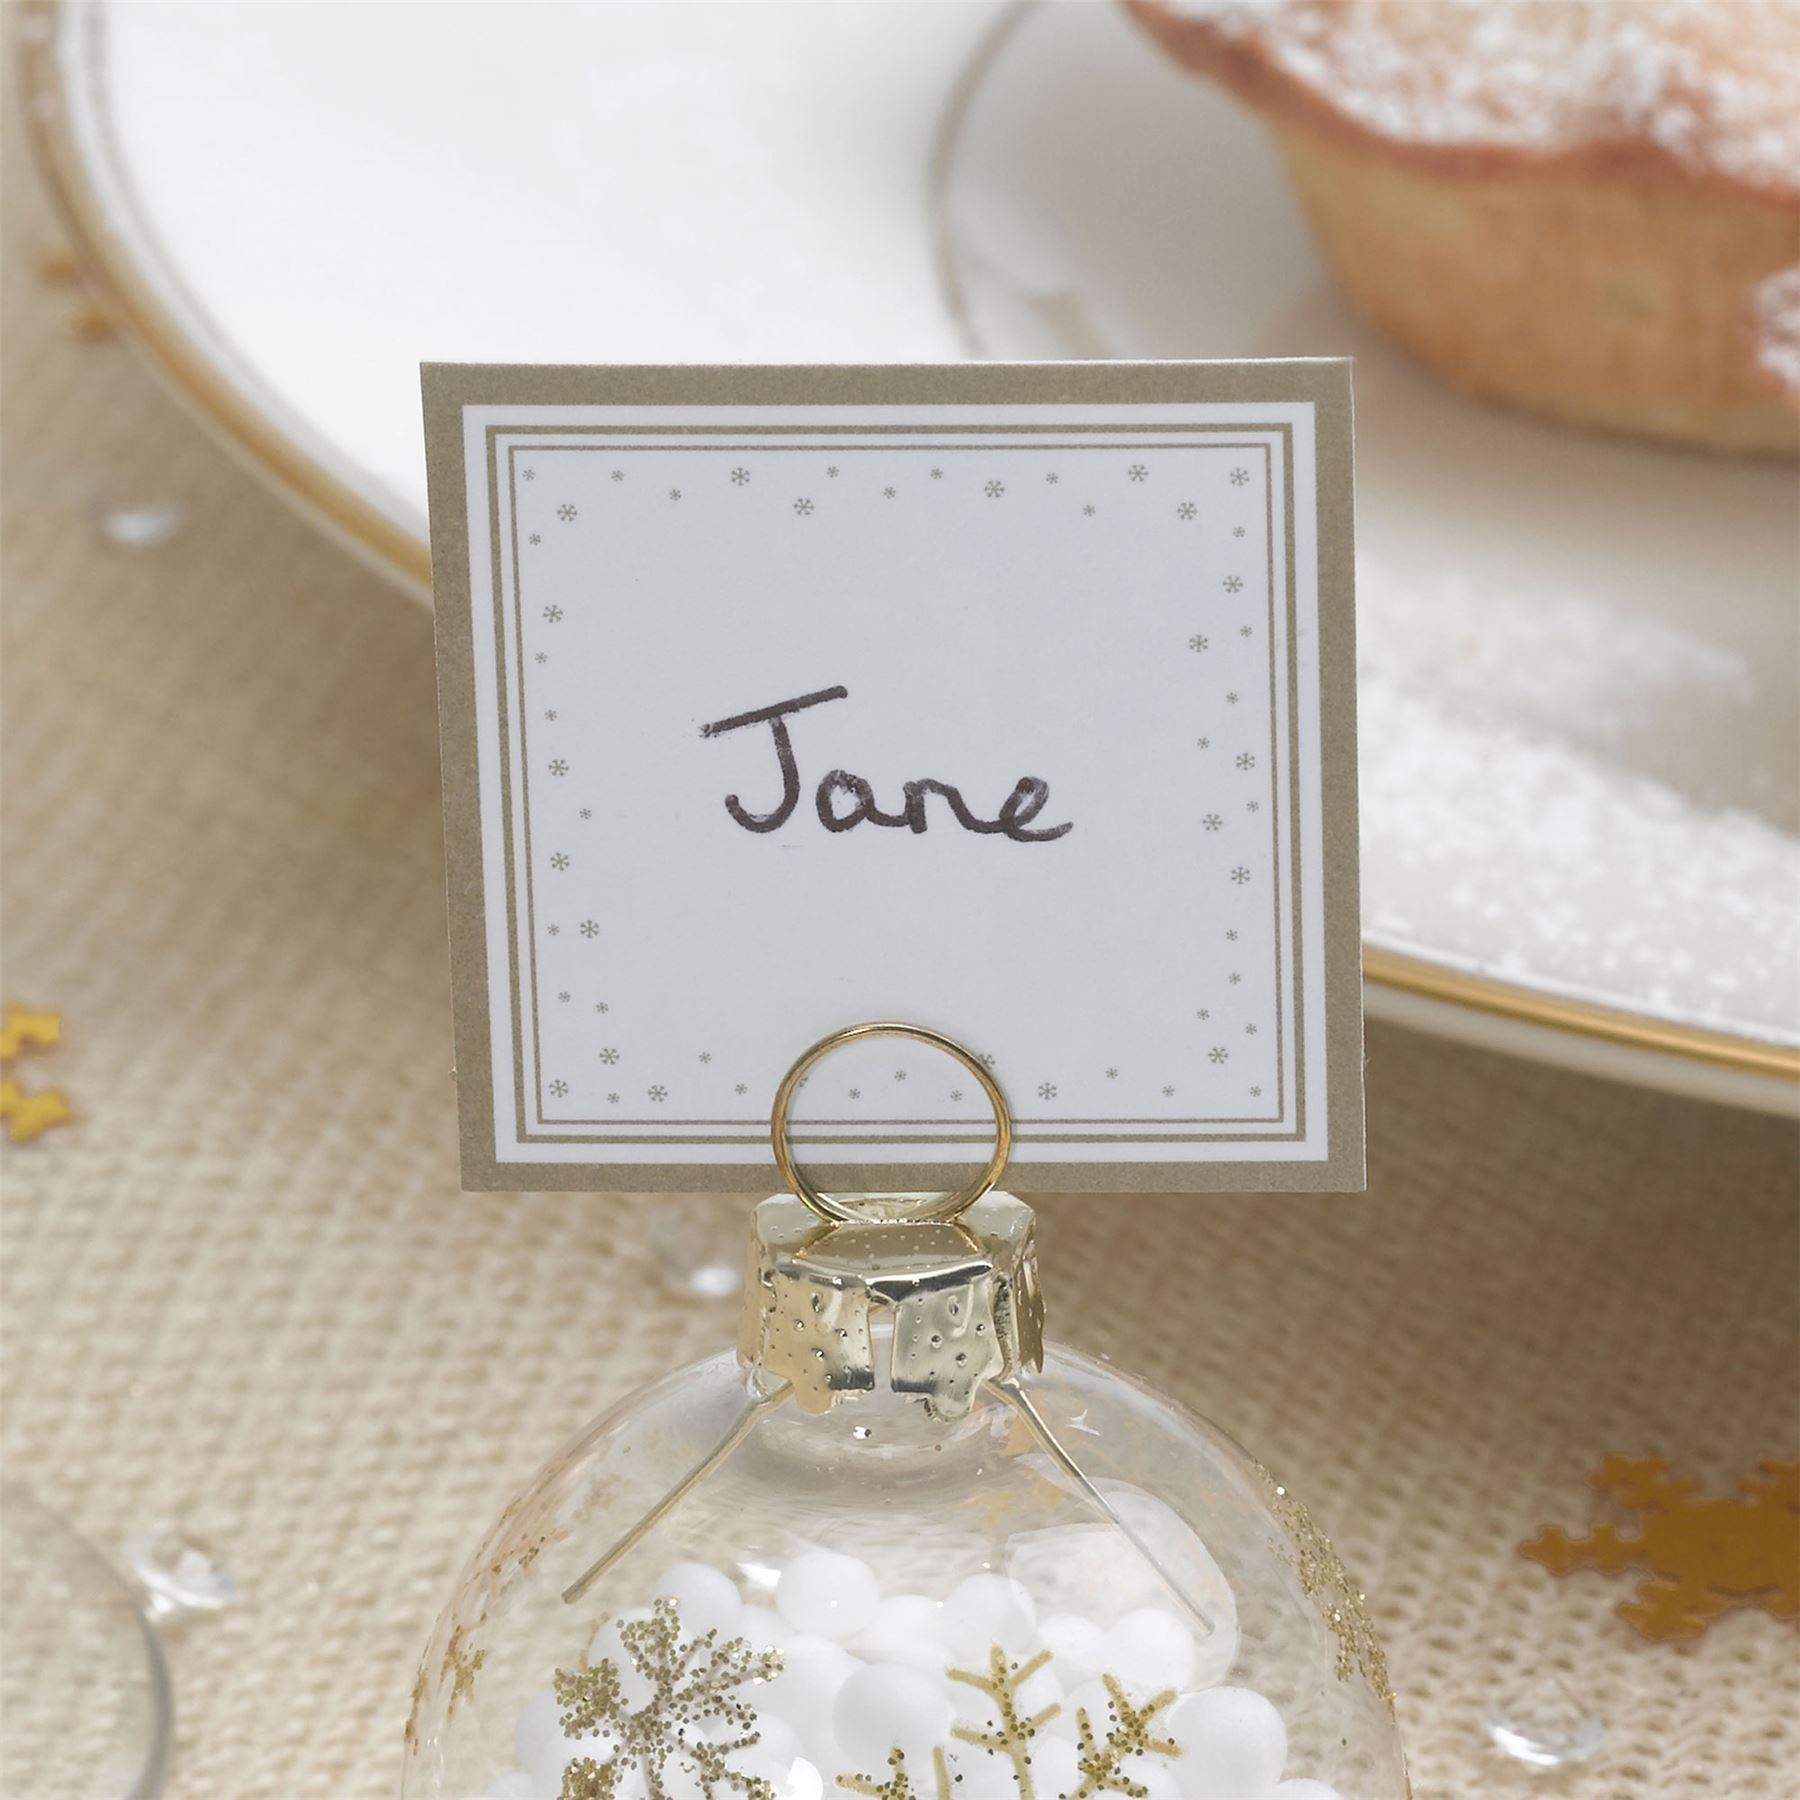 6 BAUBLE PLACE CARD HOLDERS OR 10 PLACE